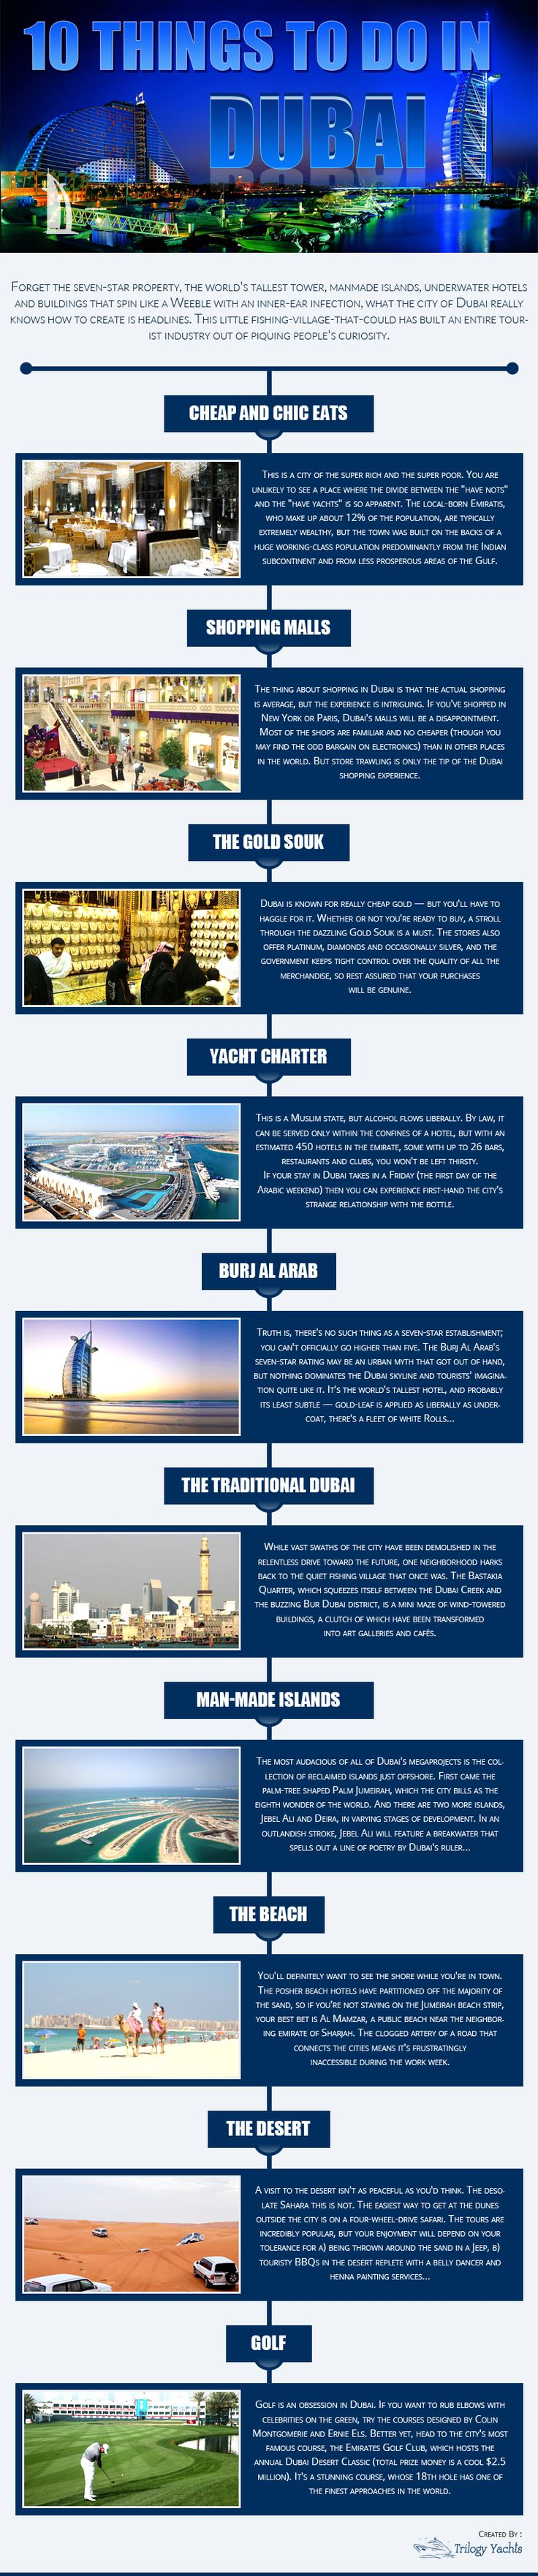 10 Things To Do In Dubai  #Infographic #Travel #Dubai